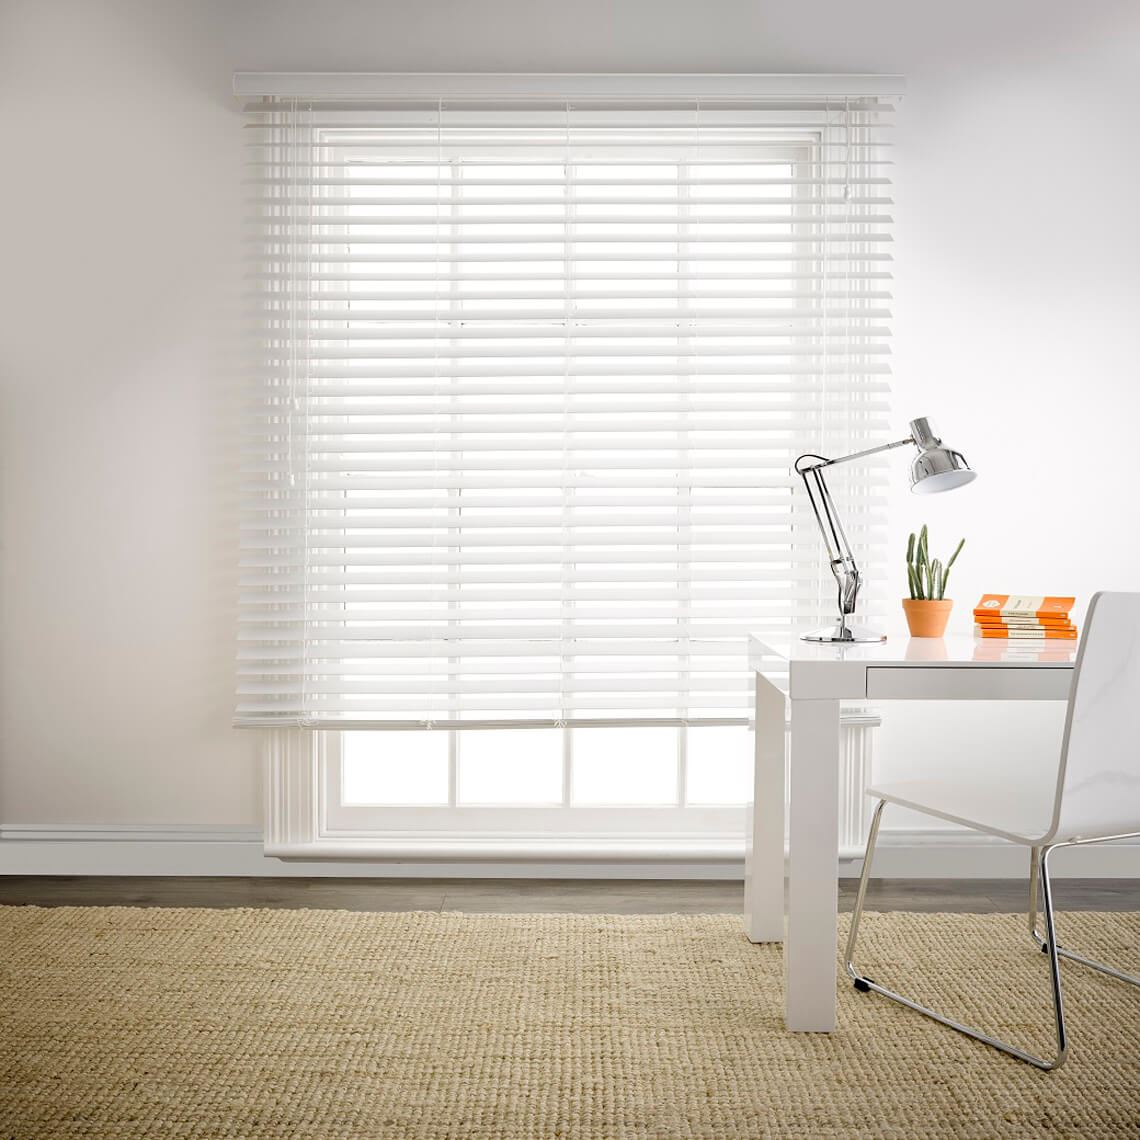 Beaumont Privacy Blind Size W 165cm x D 6cm x H 210cm in White Polyvinyl chloride Freedom by Freedom, a Curtains for sale on Style Sourcebook